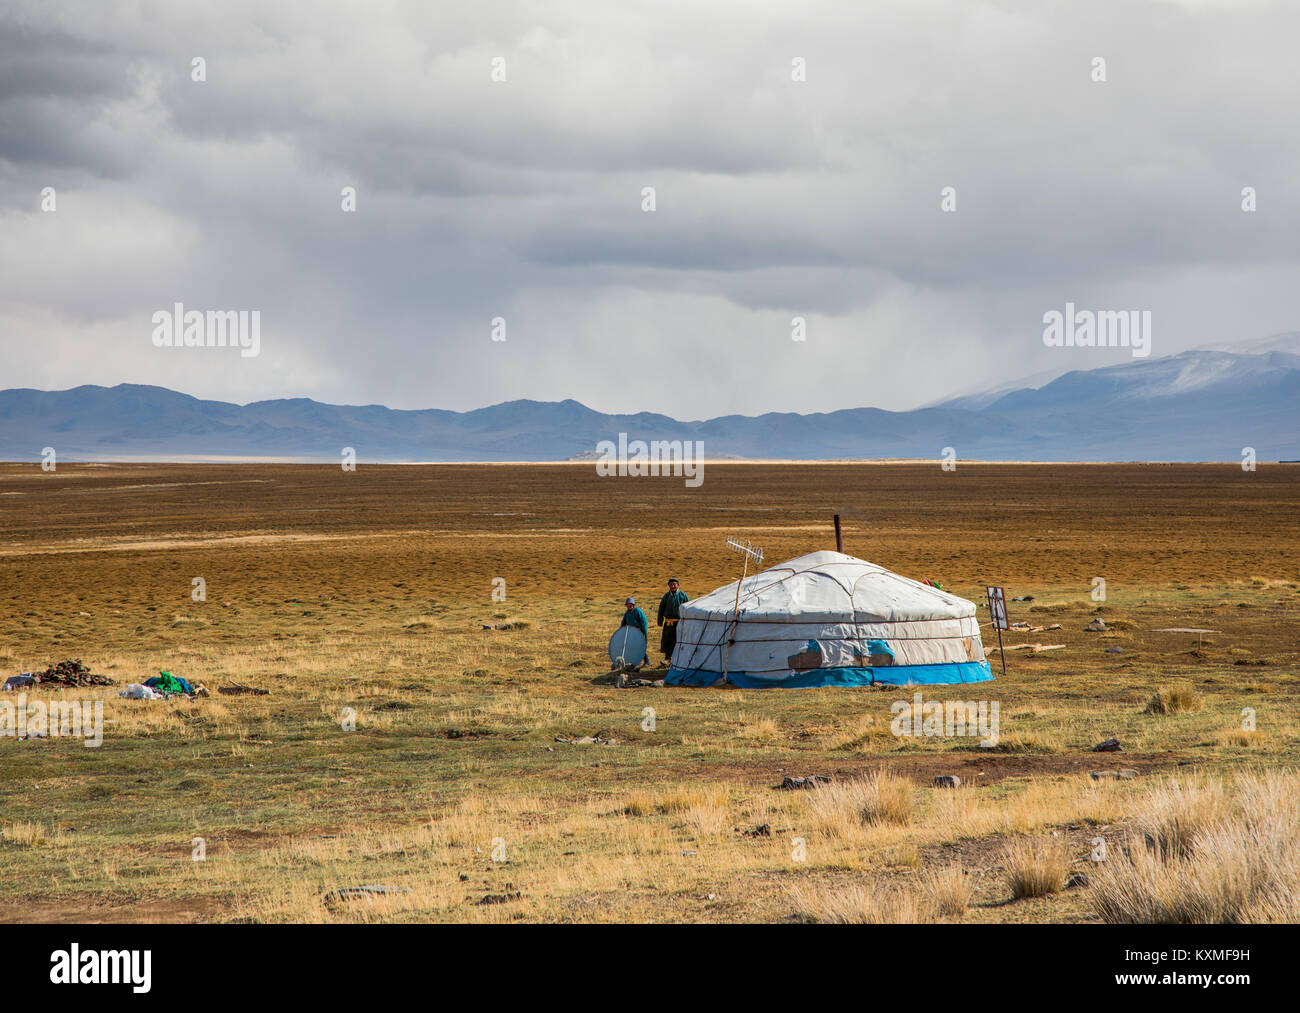 Rural family Mongolia ger father and kid steppes grasslands plains cloudy day - Stock Image